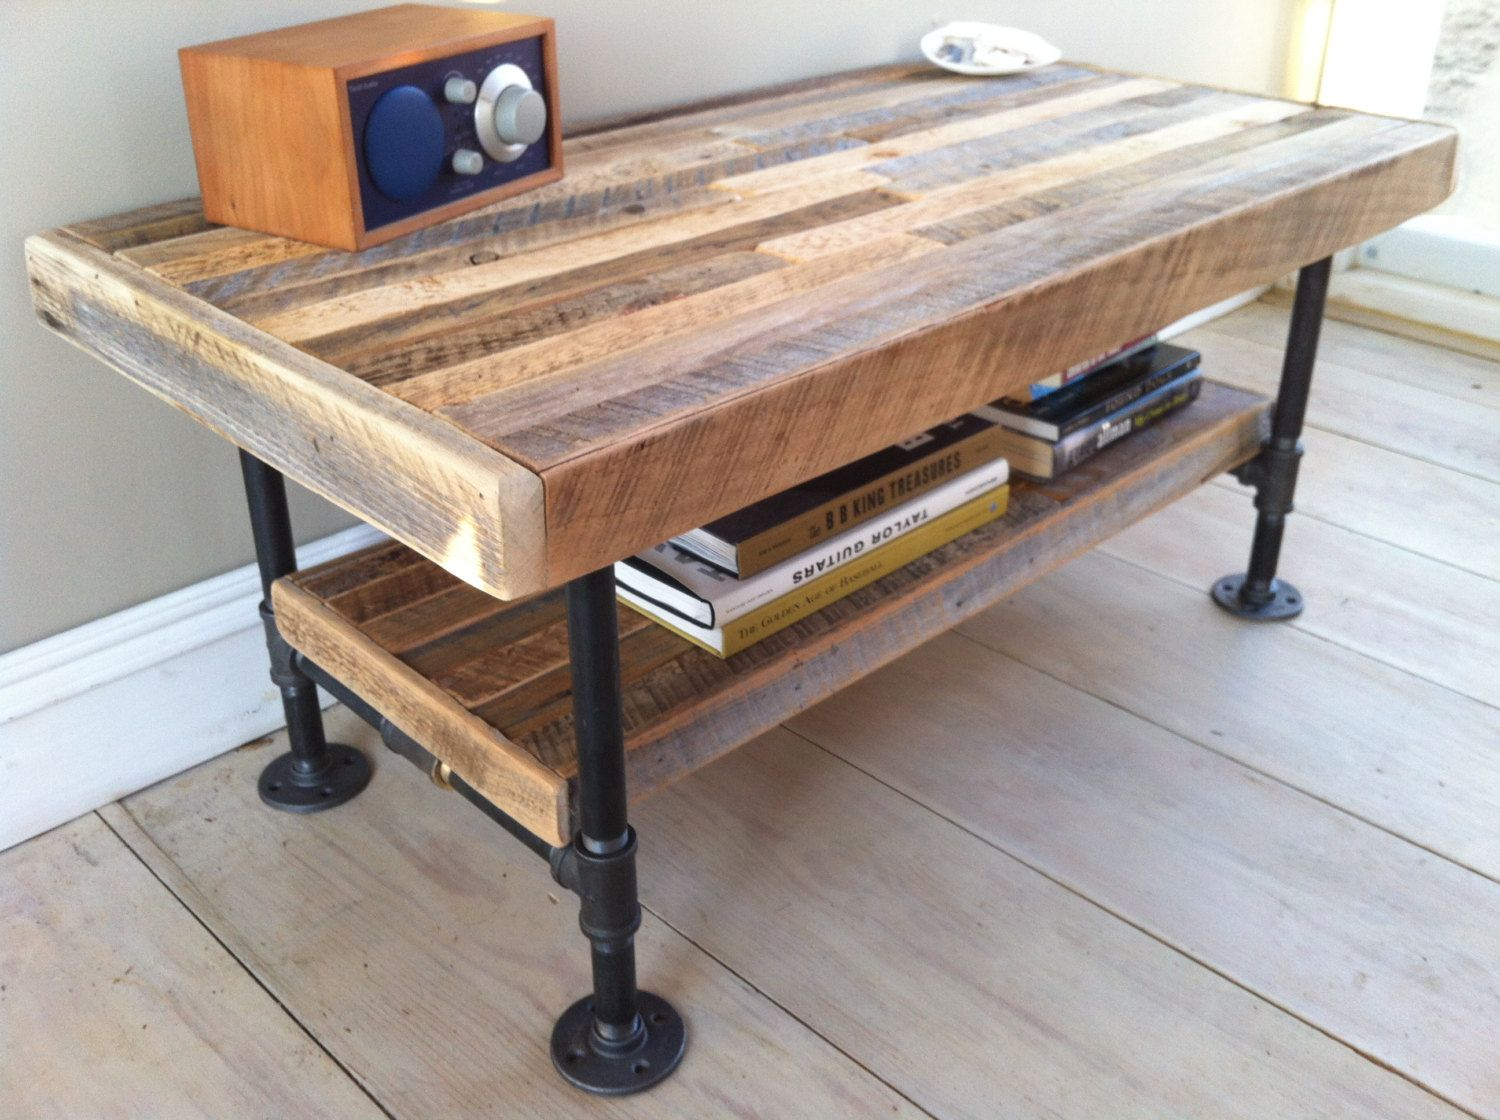 Marvelous Industrial Wood U0026 Steel Coffee Table Or Media Stand, Reclaimed Barnwood  With Industrial Pipe Legs